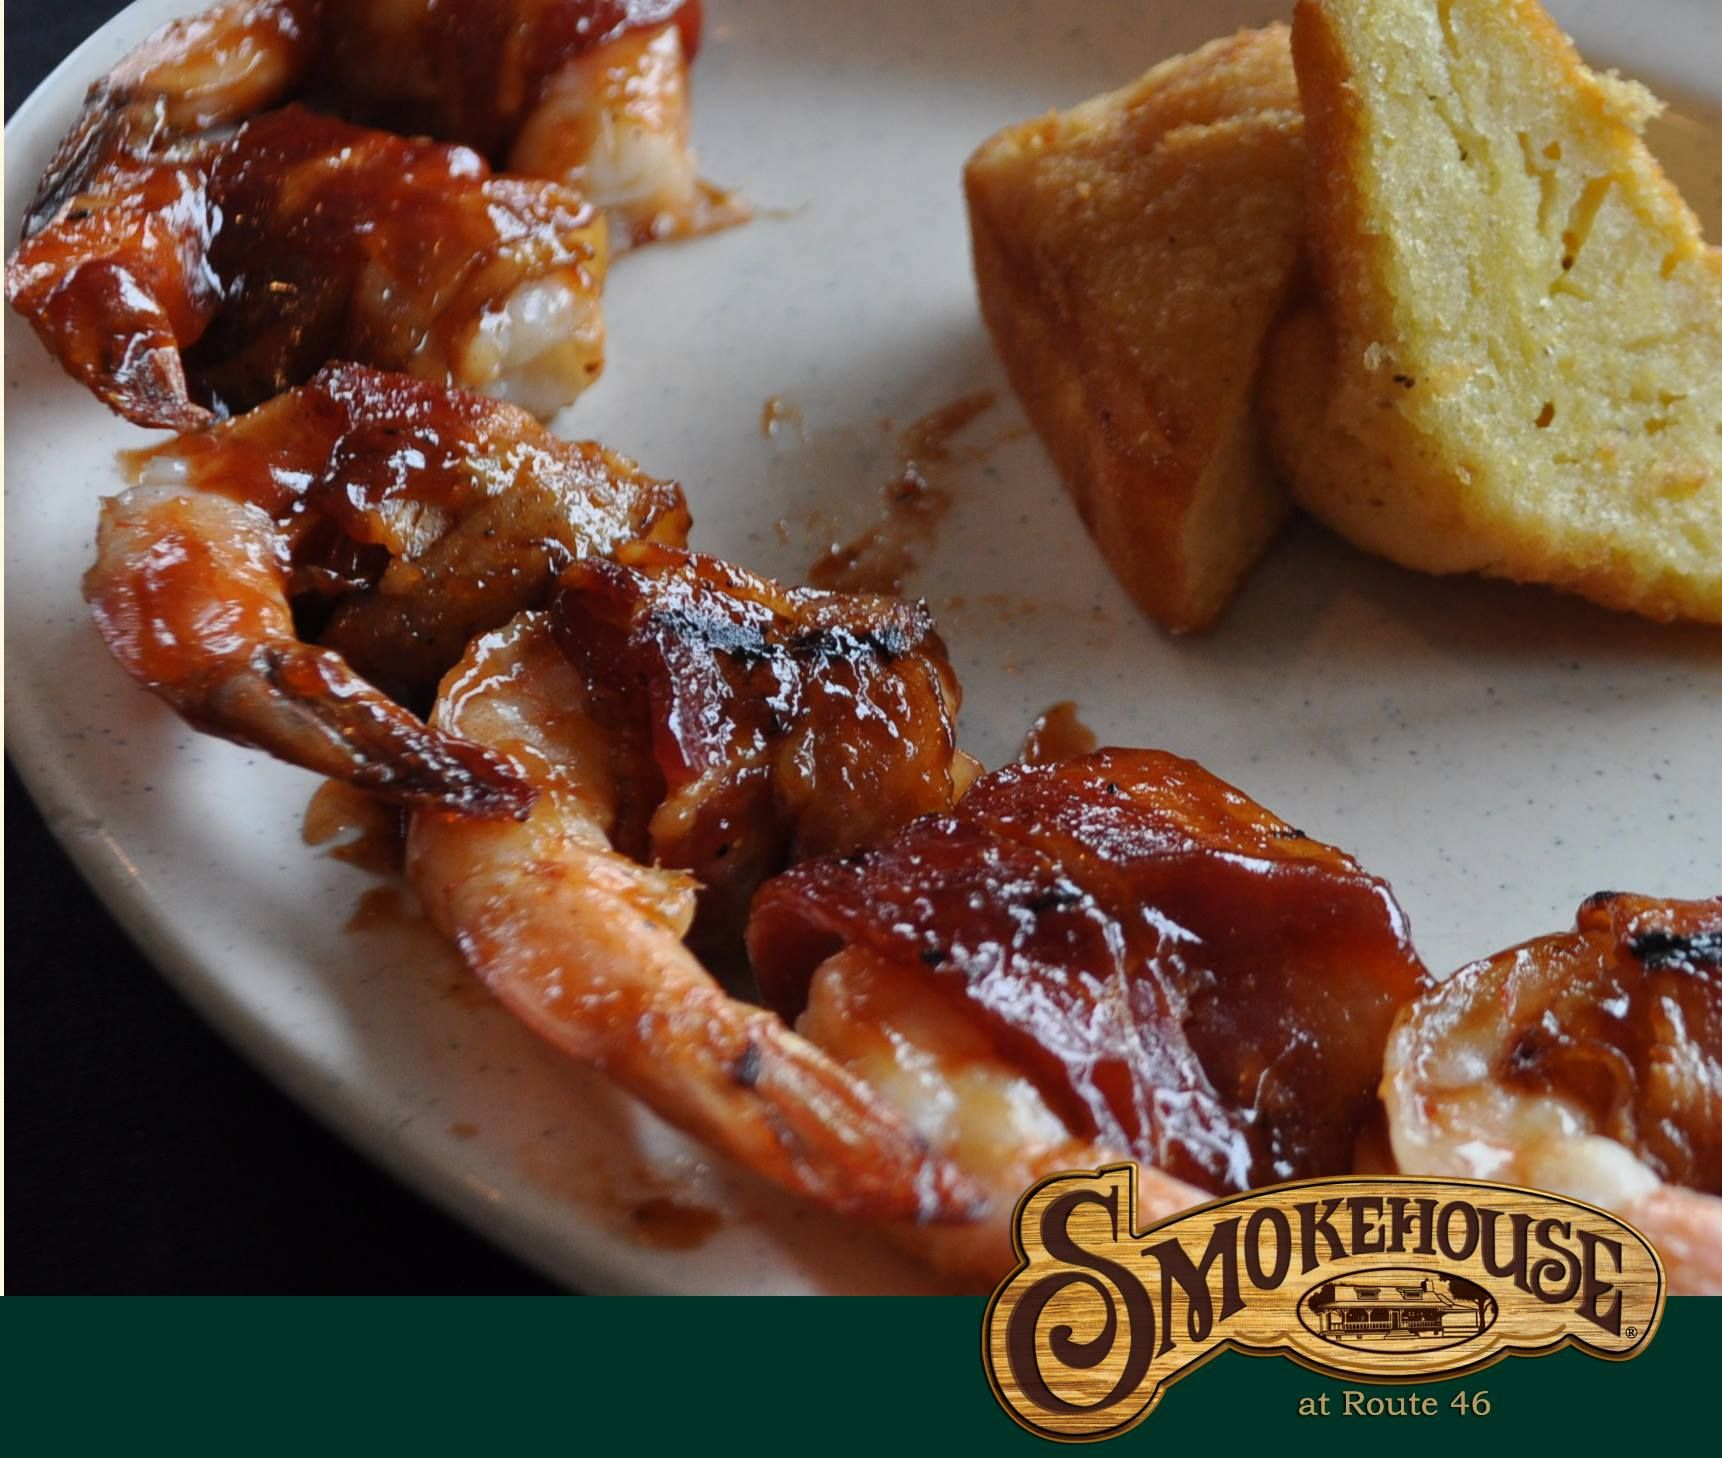 Applewood Bacon Wrapped BBQ Shrimp. Smokehouse at Route 46 open daily 11am-9pm. #Route46 #Smokehouse #BBQ #Bacon #Shrimp